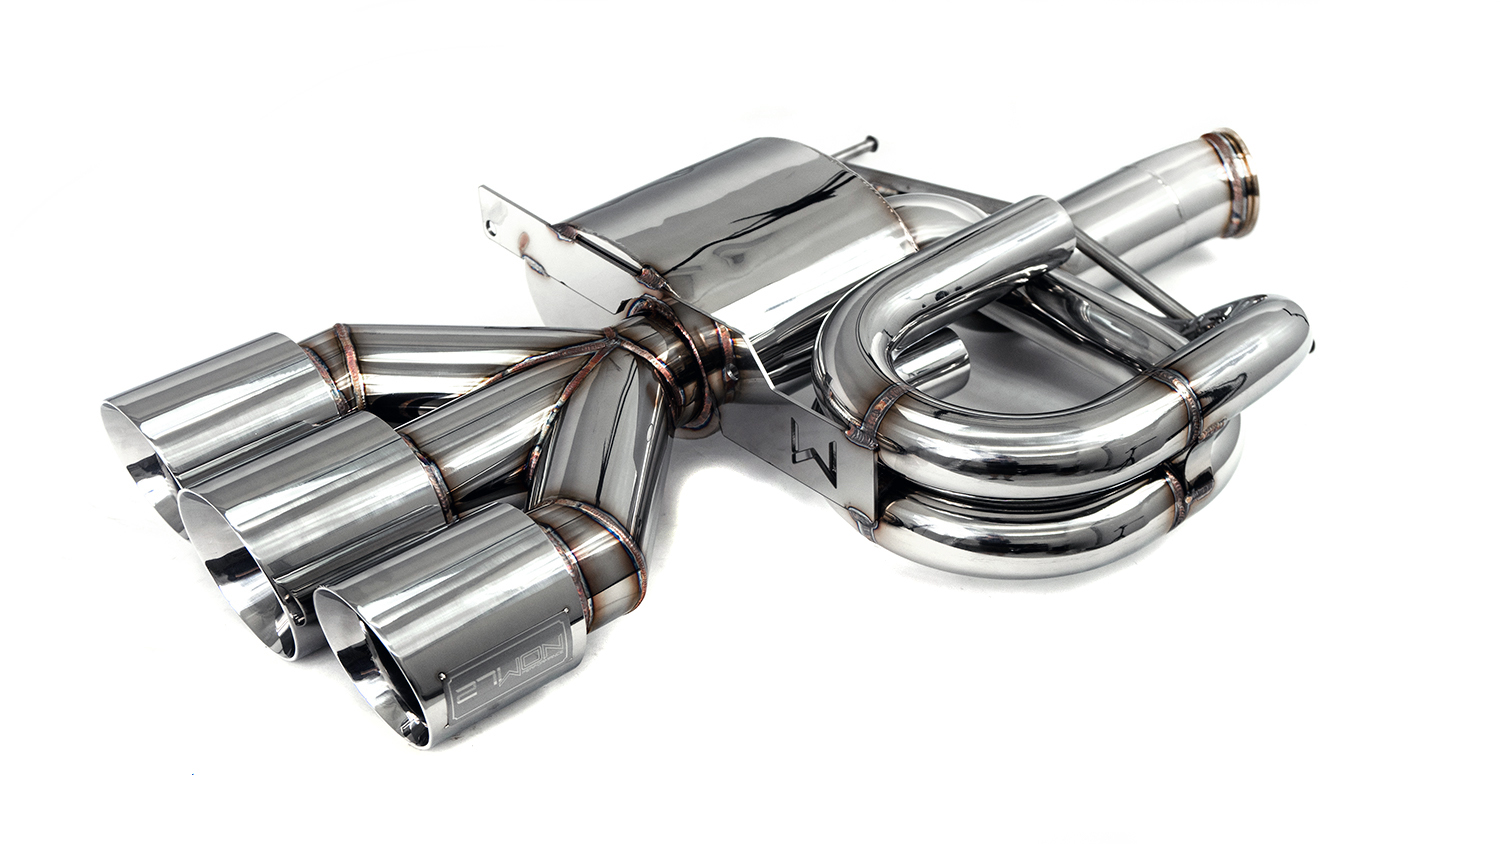 The most unique and artfully designed exhaust system for your FK8